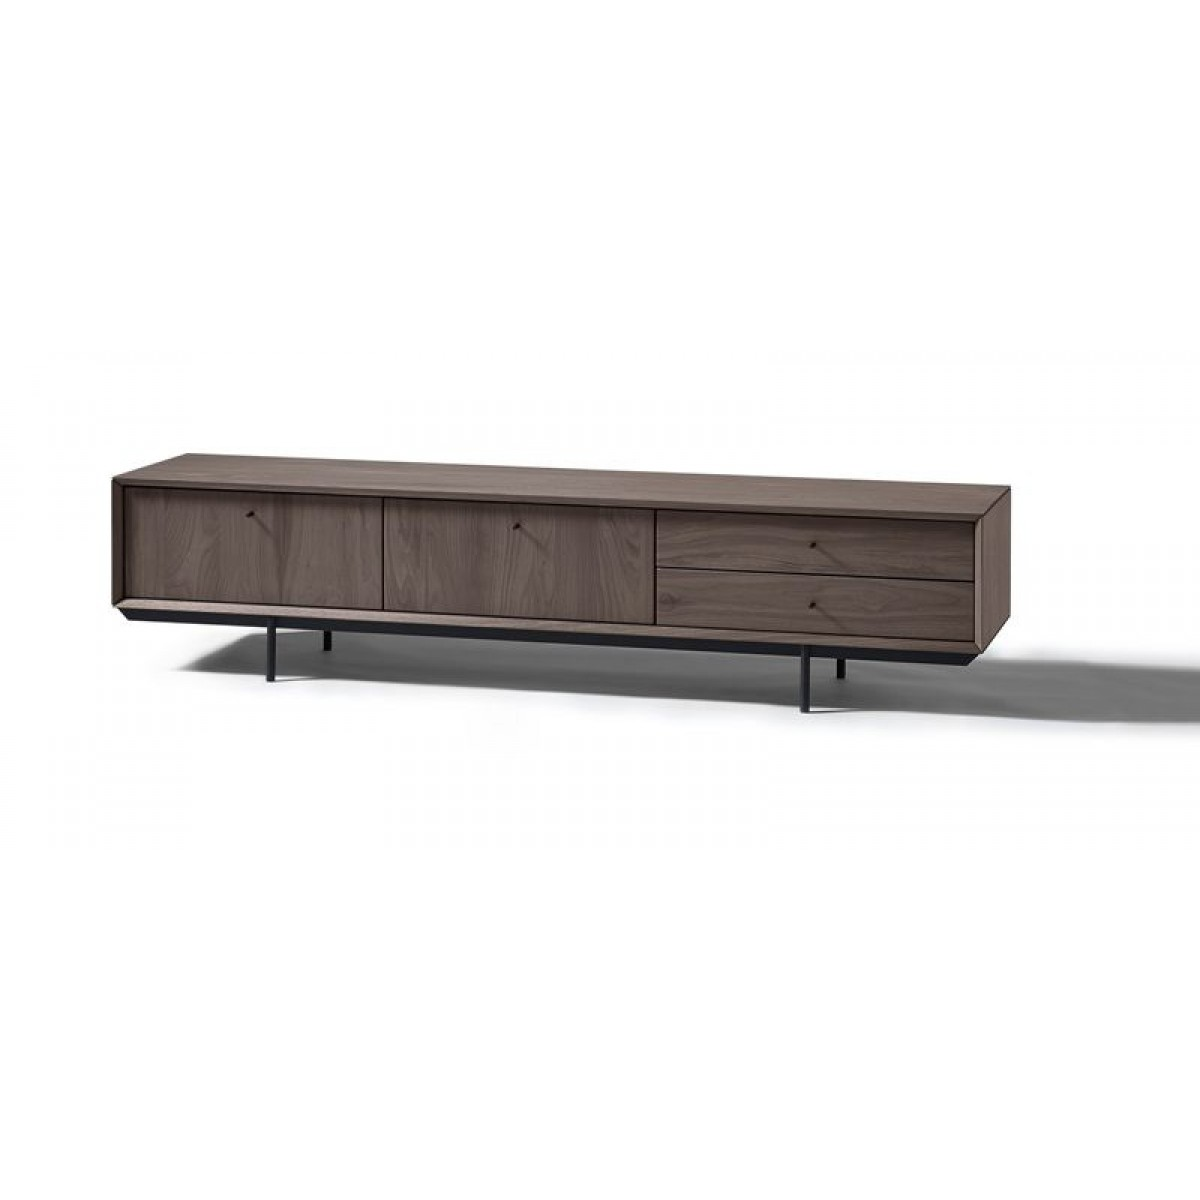 tv-dressoir-cloud-clo-11-noten-probilex-miltonhouse